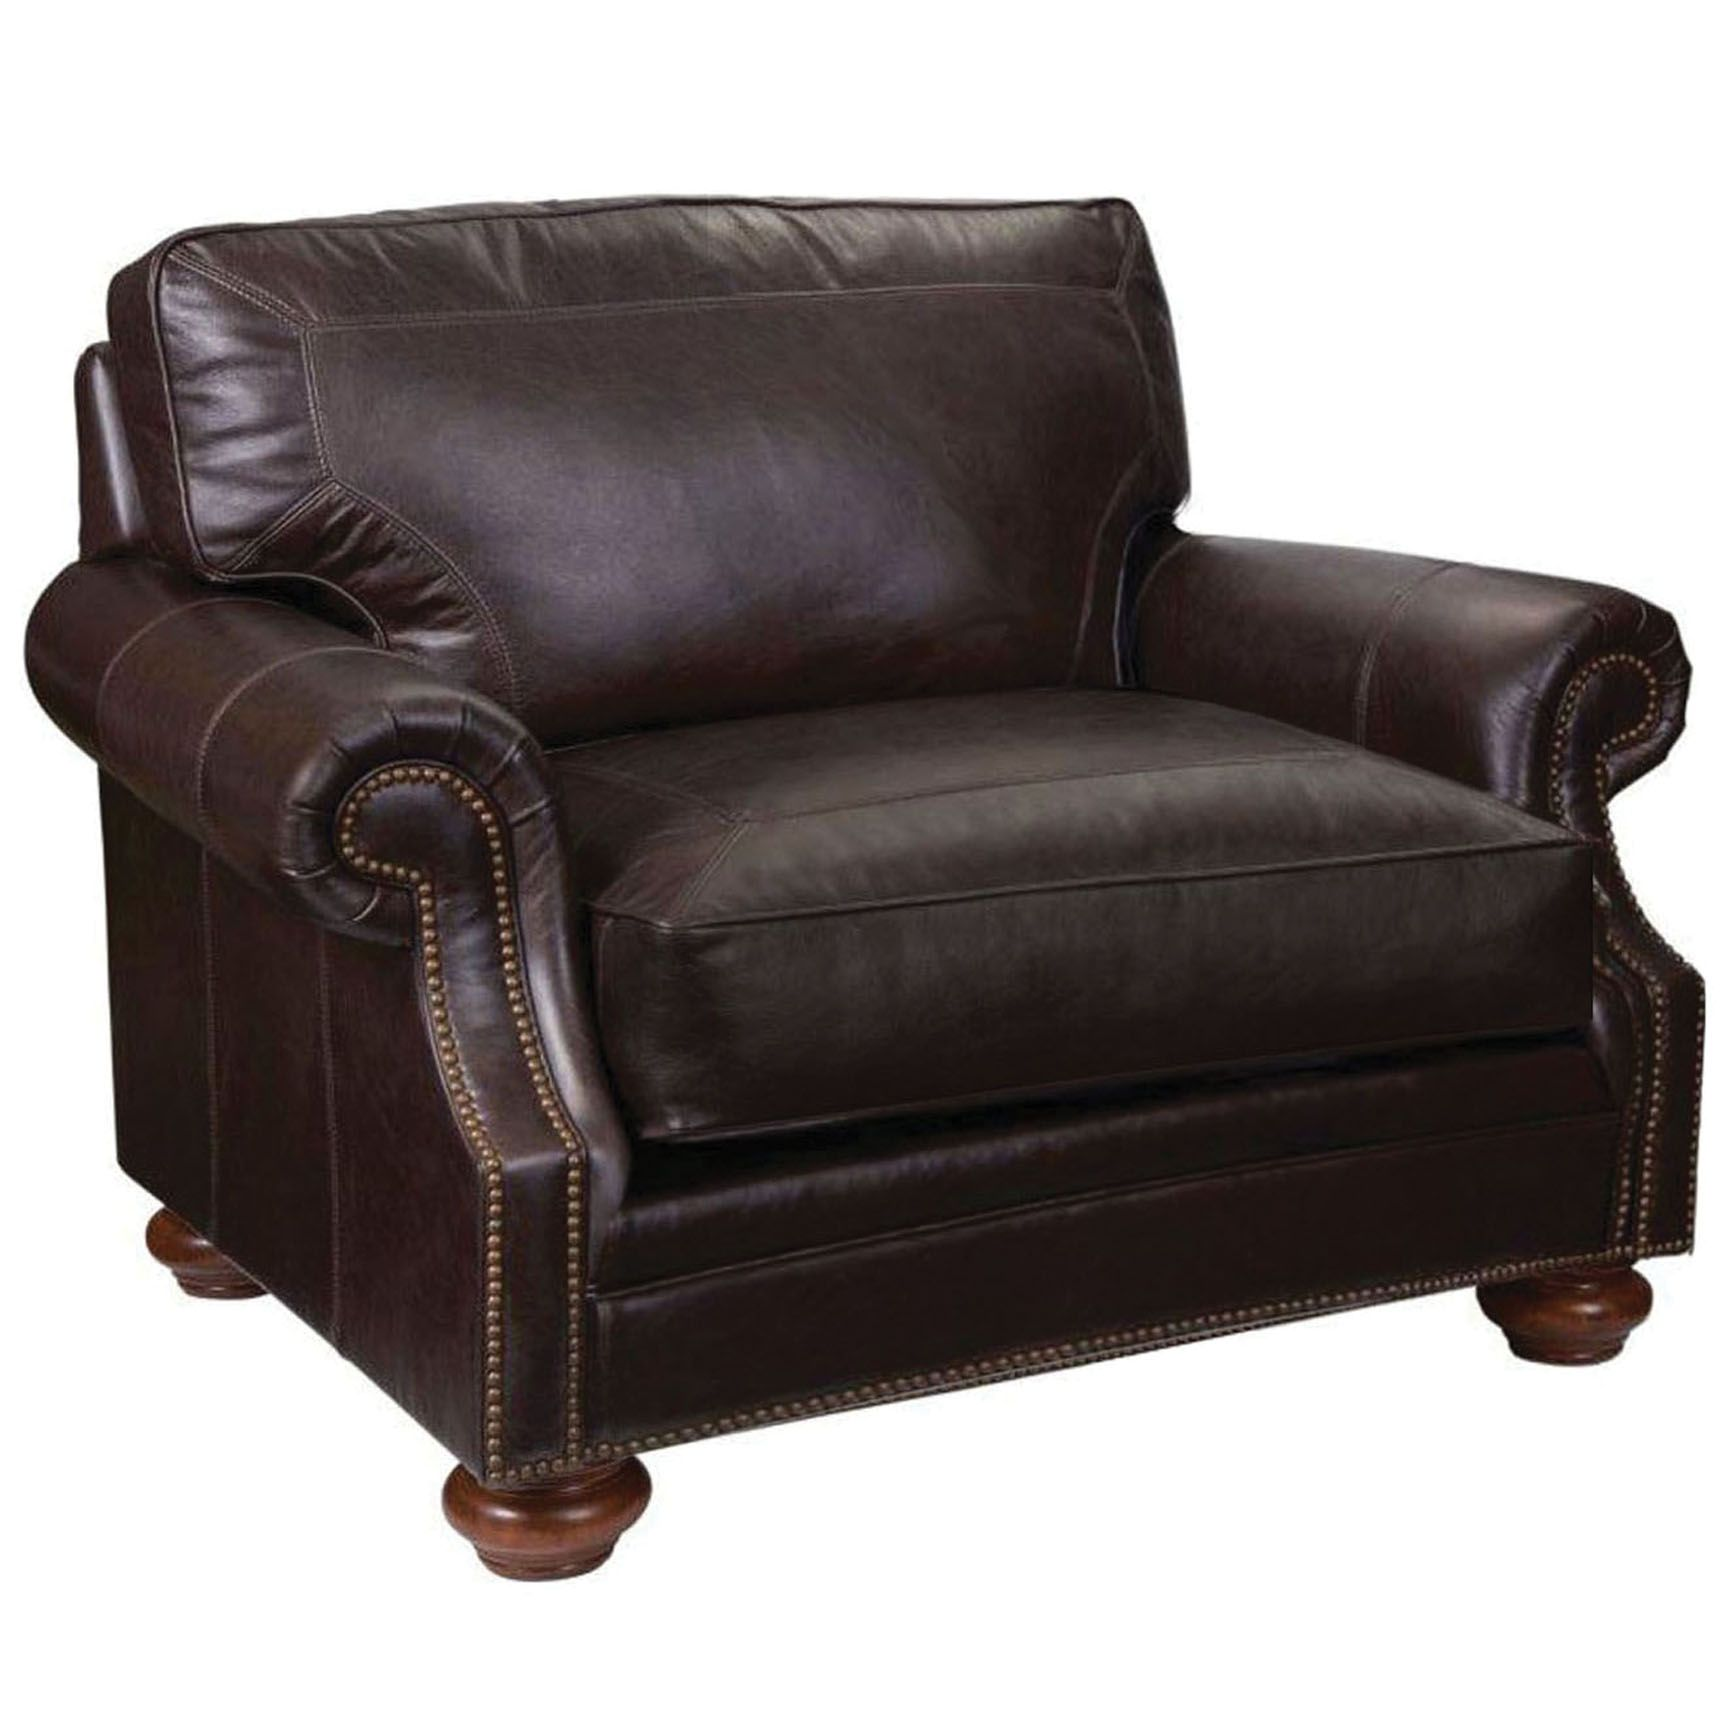 Broyhill tanners choice heuer leather chair and a half bh